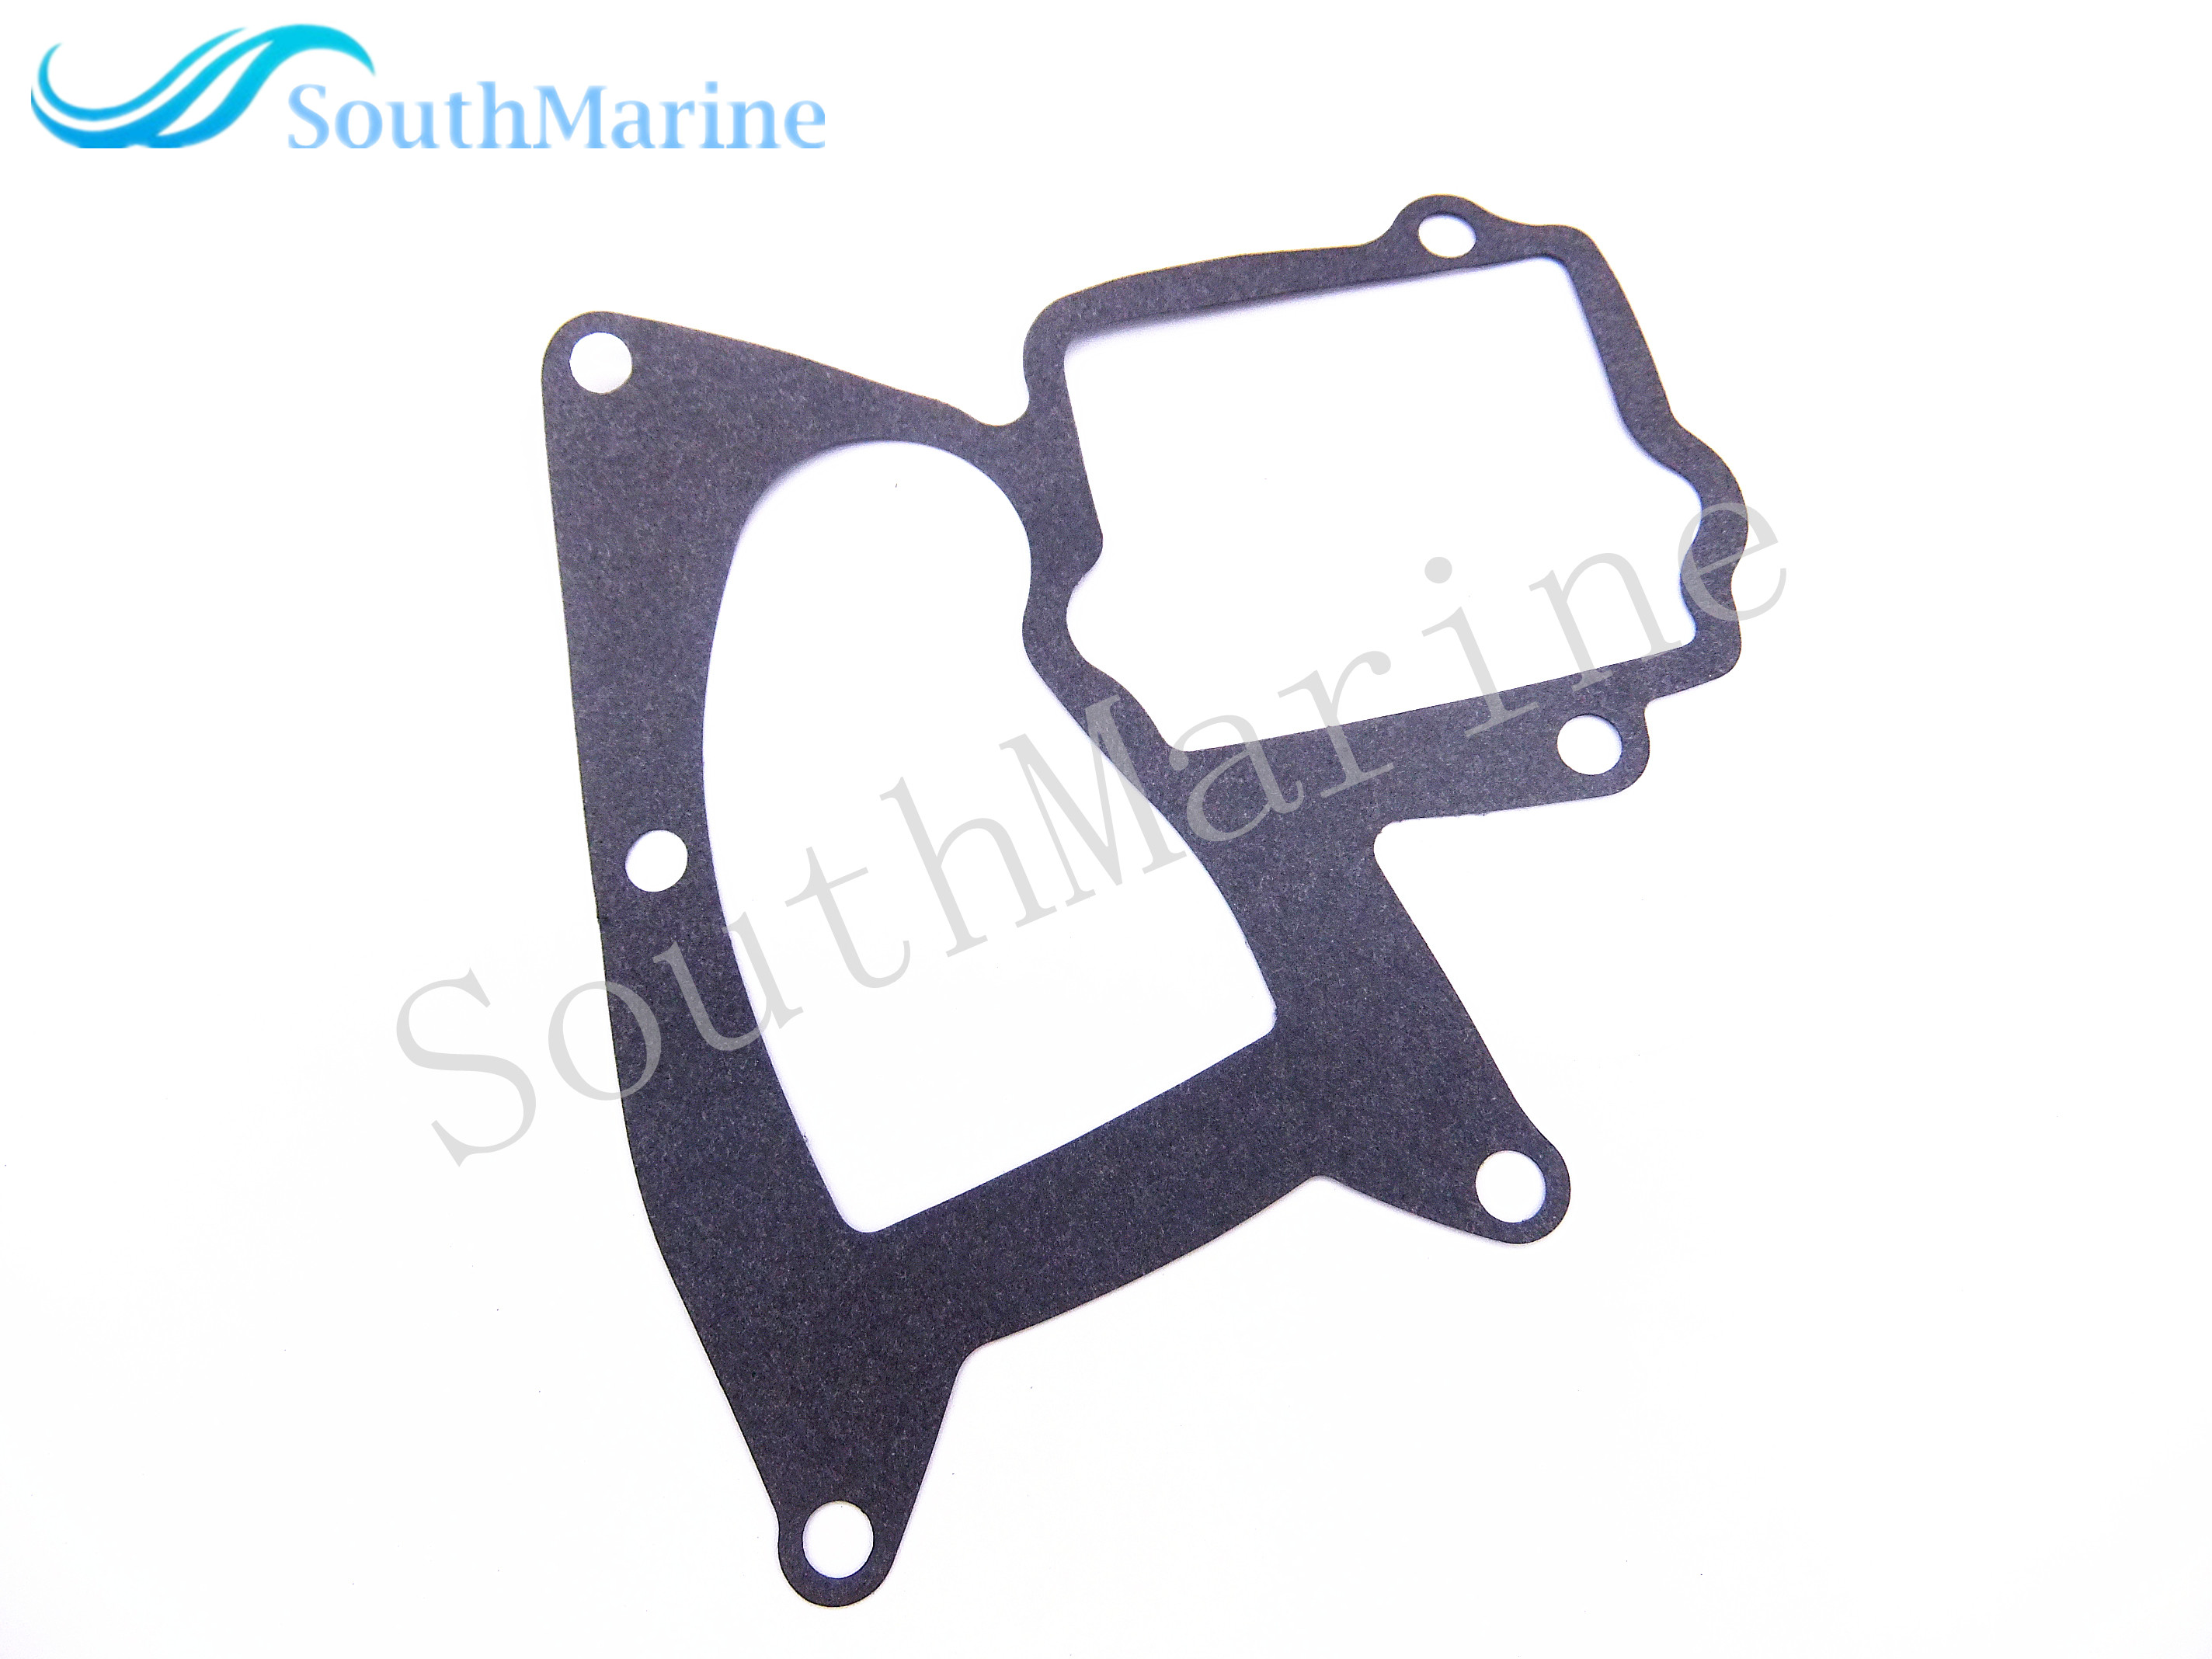 6f5-13645-00 01 6f5-13645-a0 A1 A2 Gasket Manifold For Yamaha Outboard C40 E40 40hp 36hp Boat Motor Atv,rv,boat & Other Vehicle